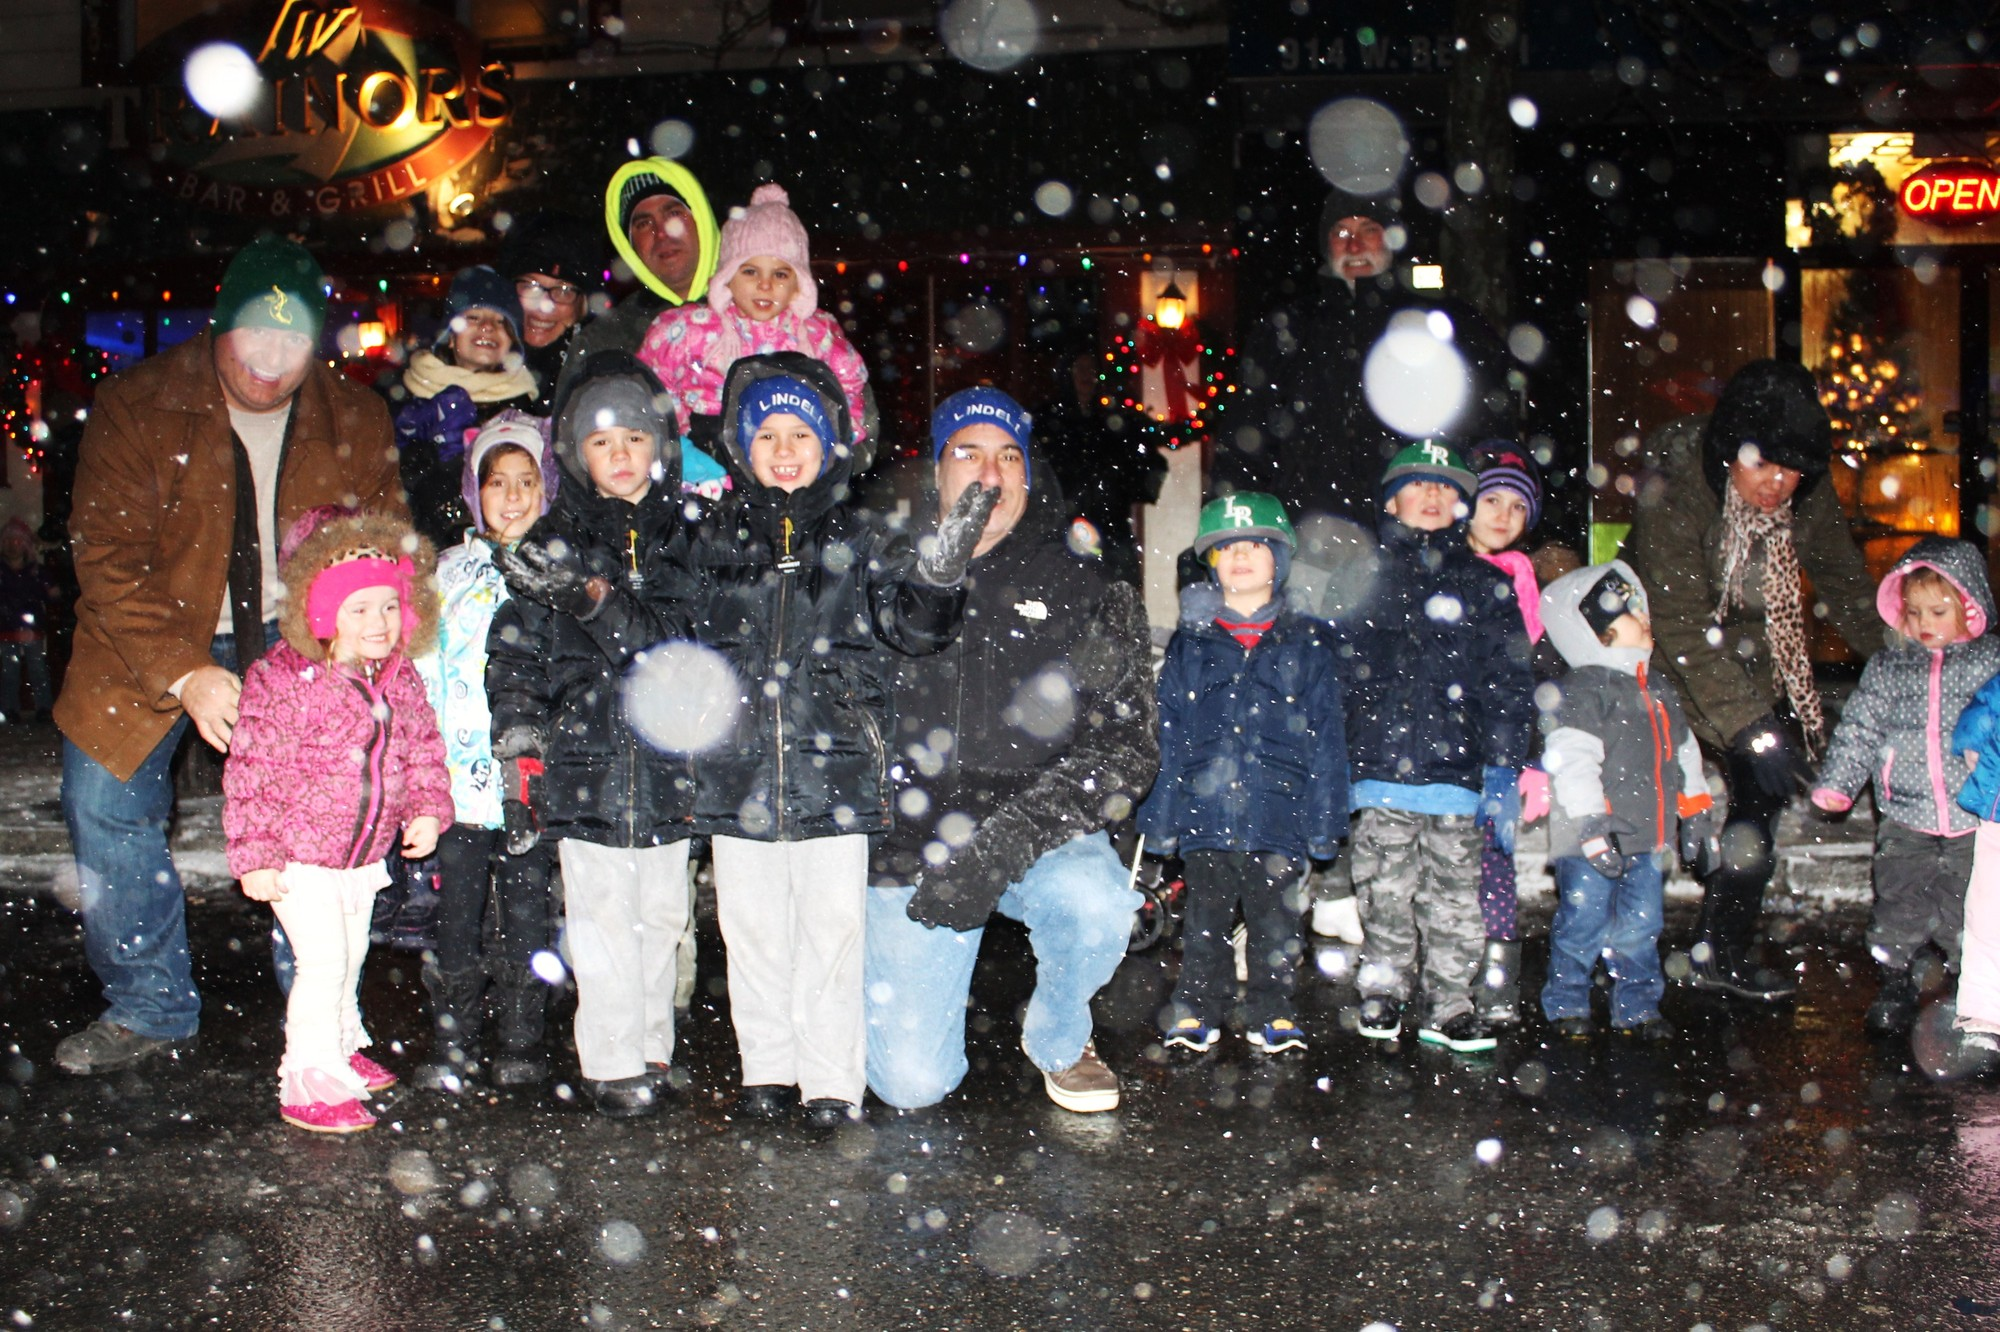 Kids bundled up and braved the snowstorm to watch the parade last Saturday.